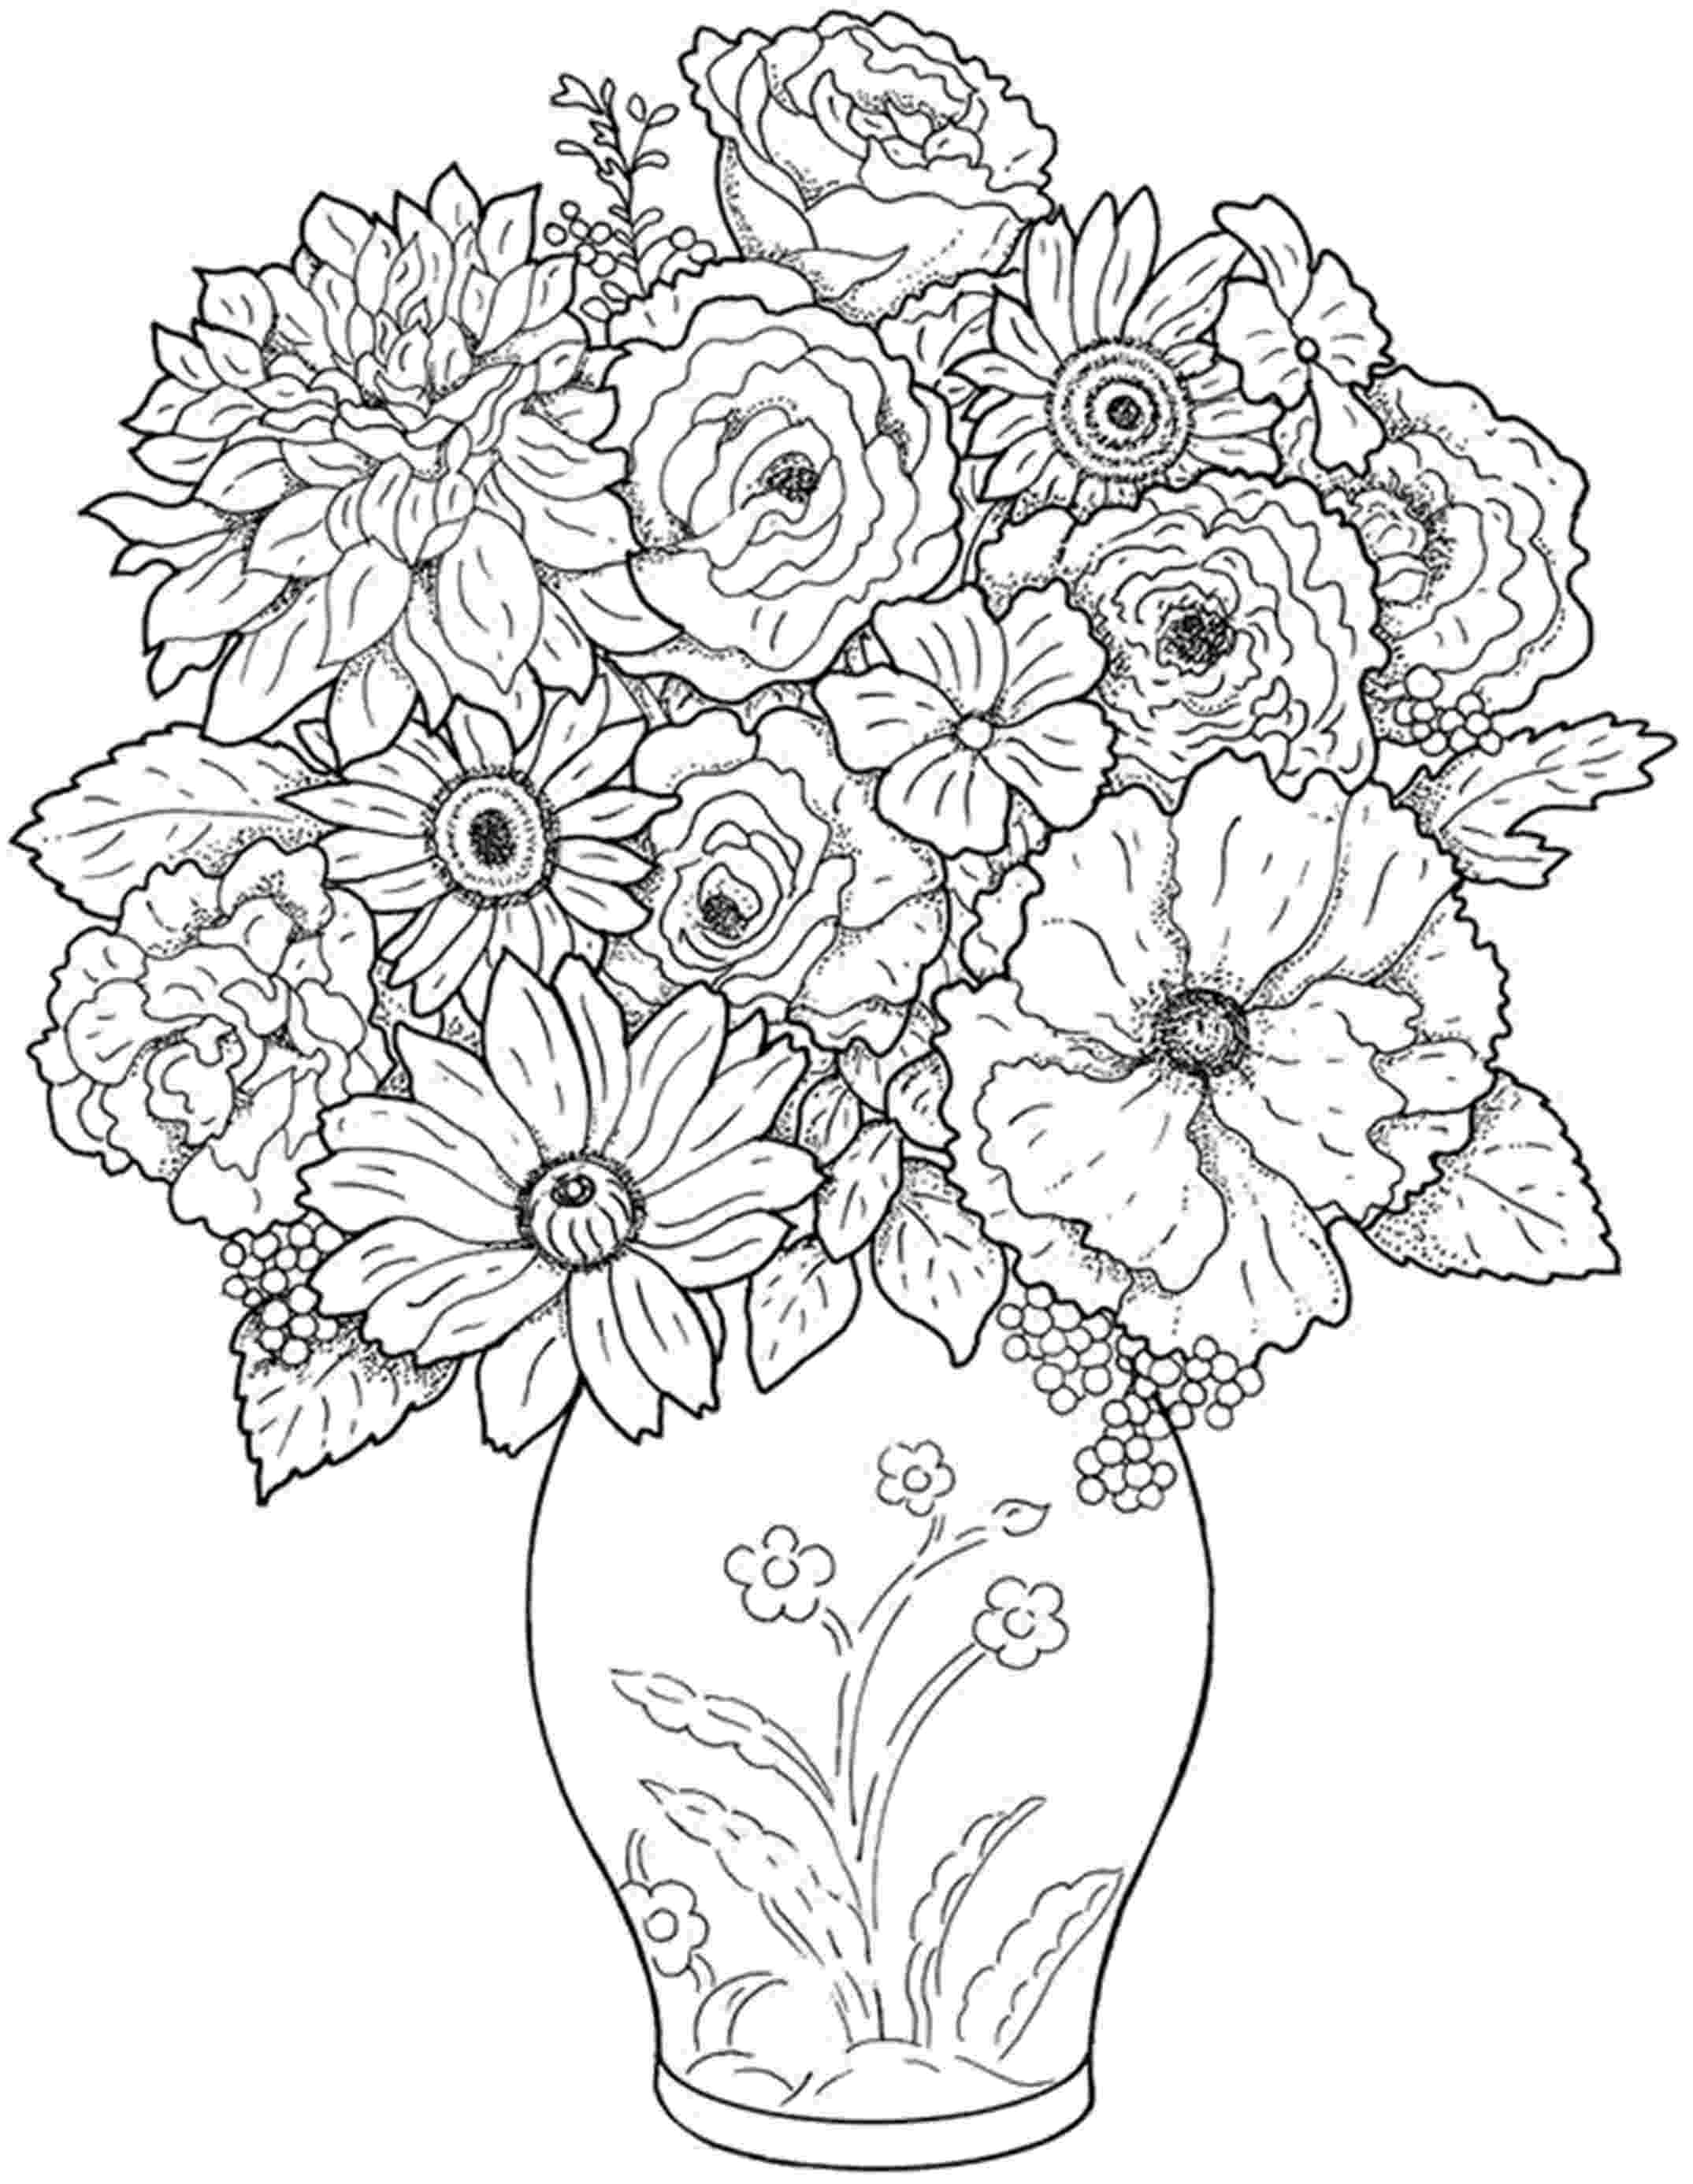 flower bouquet coloring pages free printable flower coloring pages for kids best flower bouquet pages coloring